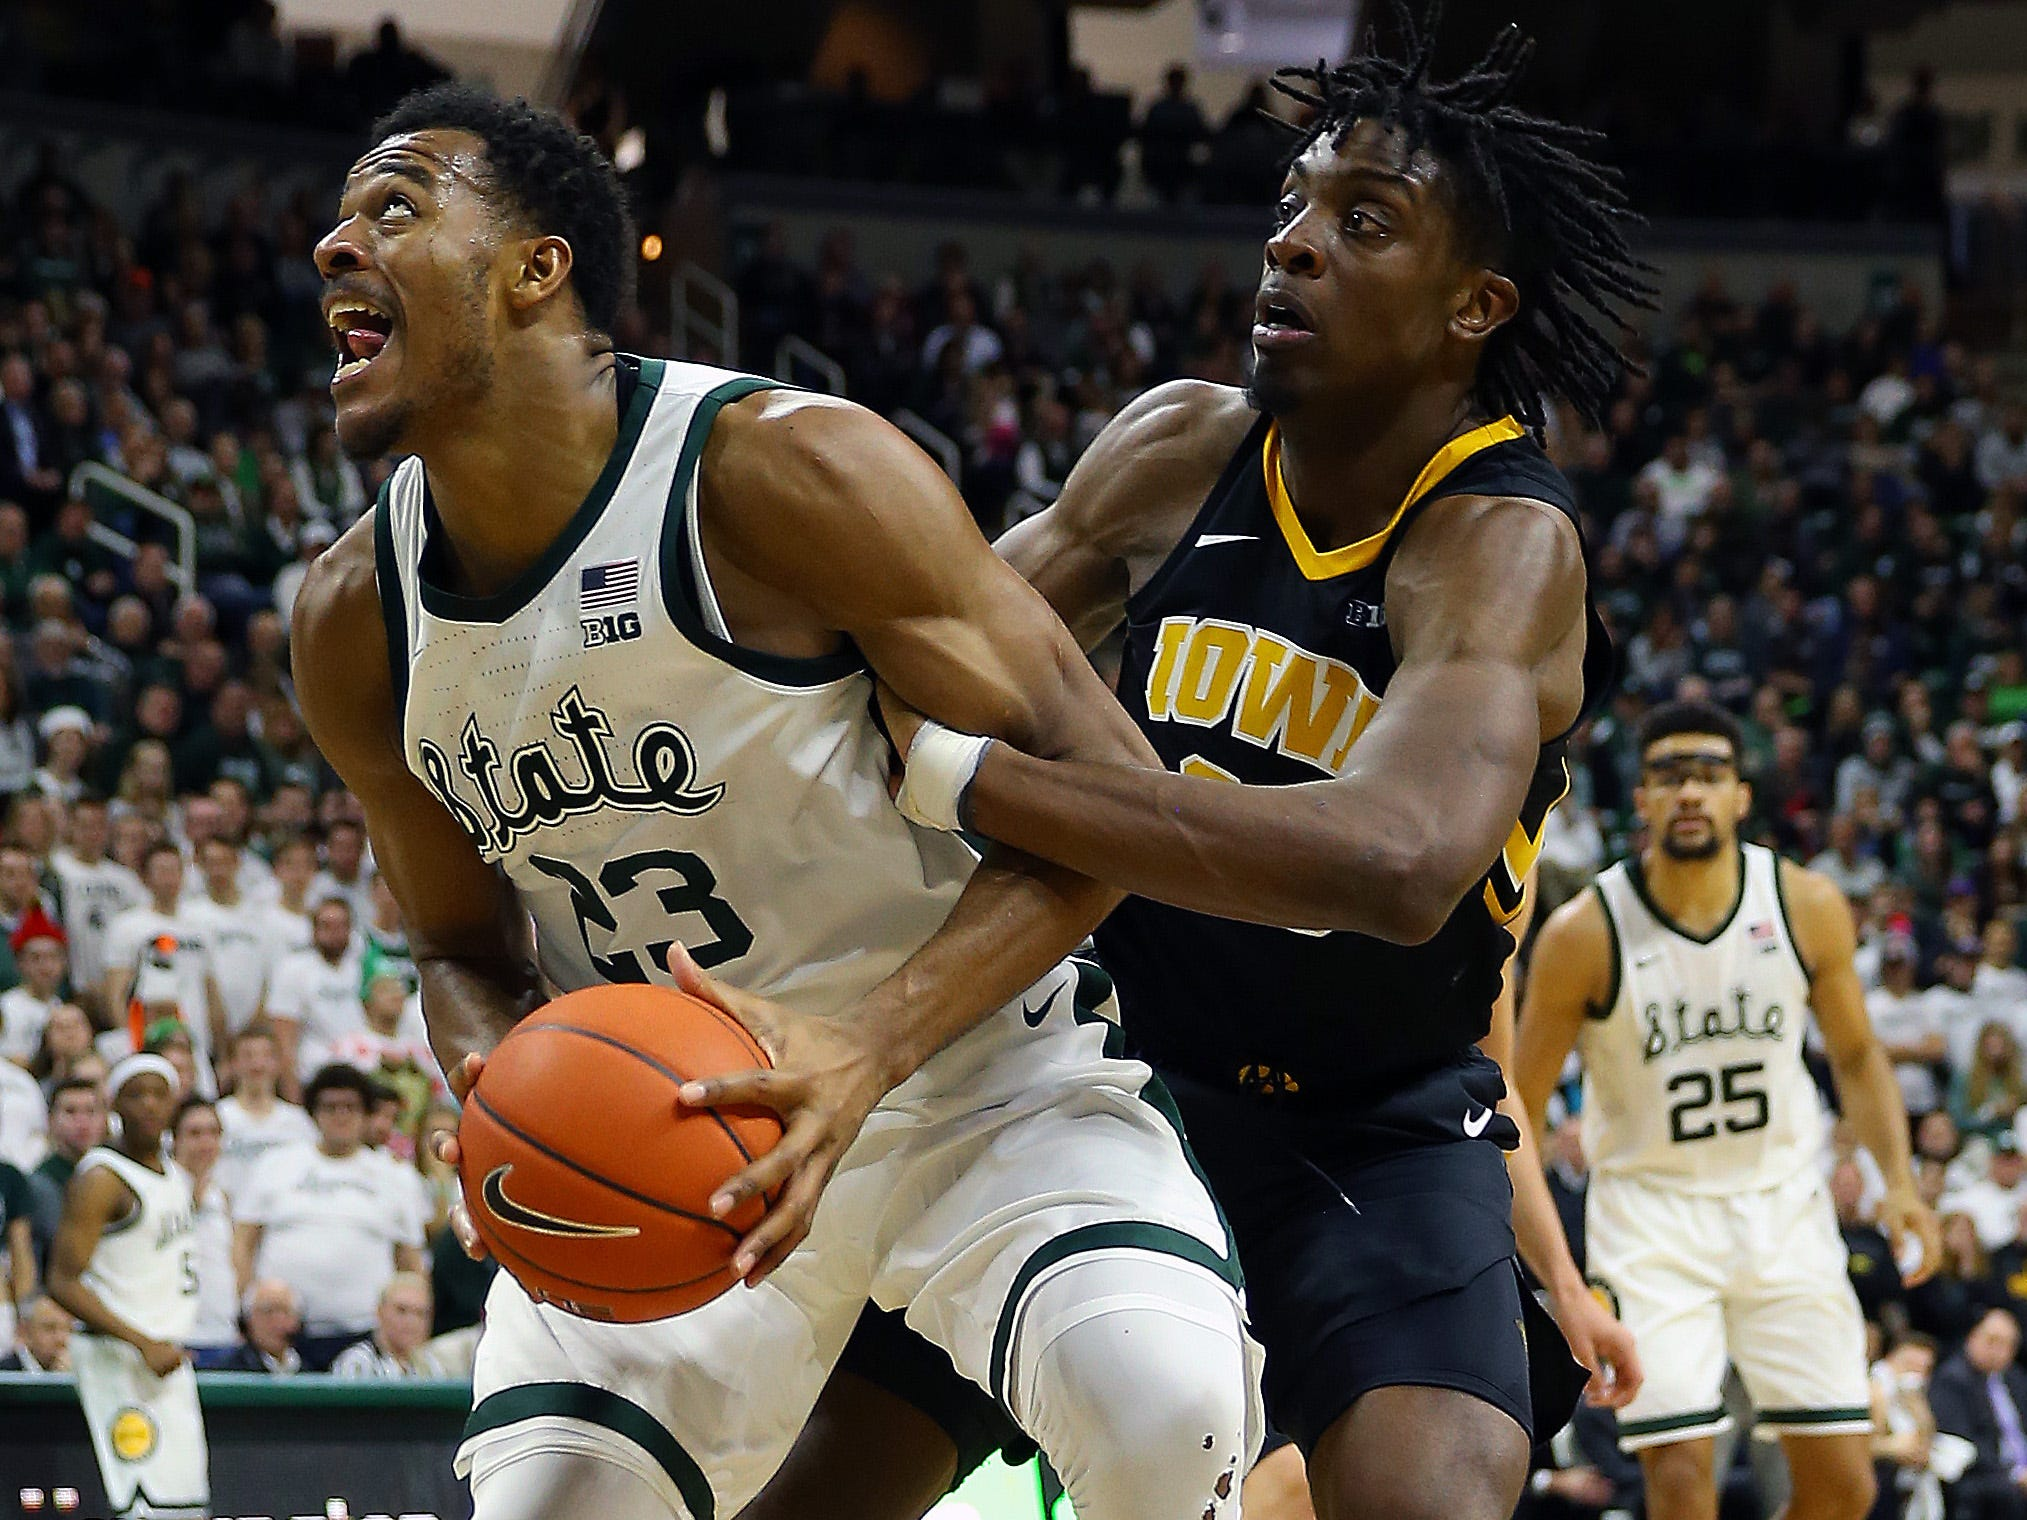 Dec 3, 2018; East Lansing, MI, USA; Michigan State Spartans forward Xavier Tillman (23) is fouled by Iowa Hawkeyes forward Tyler Cook (25) during the second half of a game at Breslin Center. Mandatory Credit: Mike Carter-USA TODAY Sports